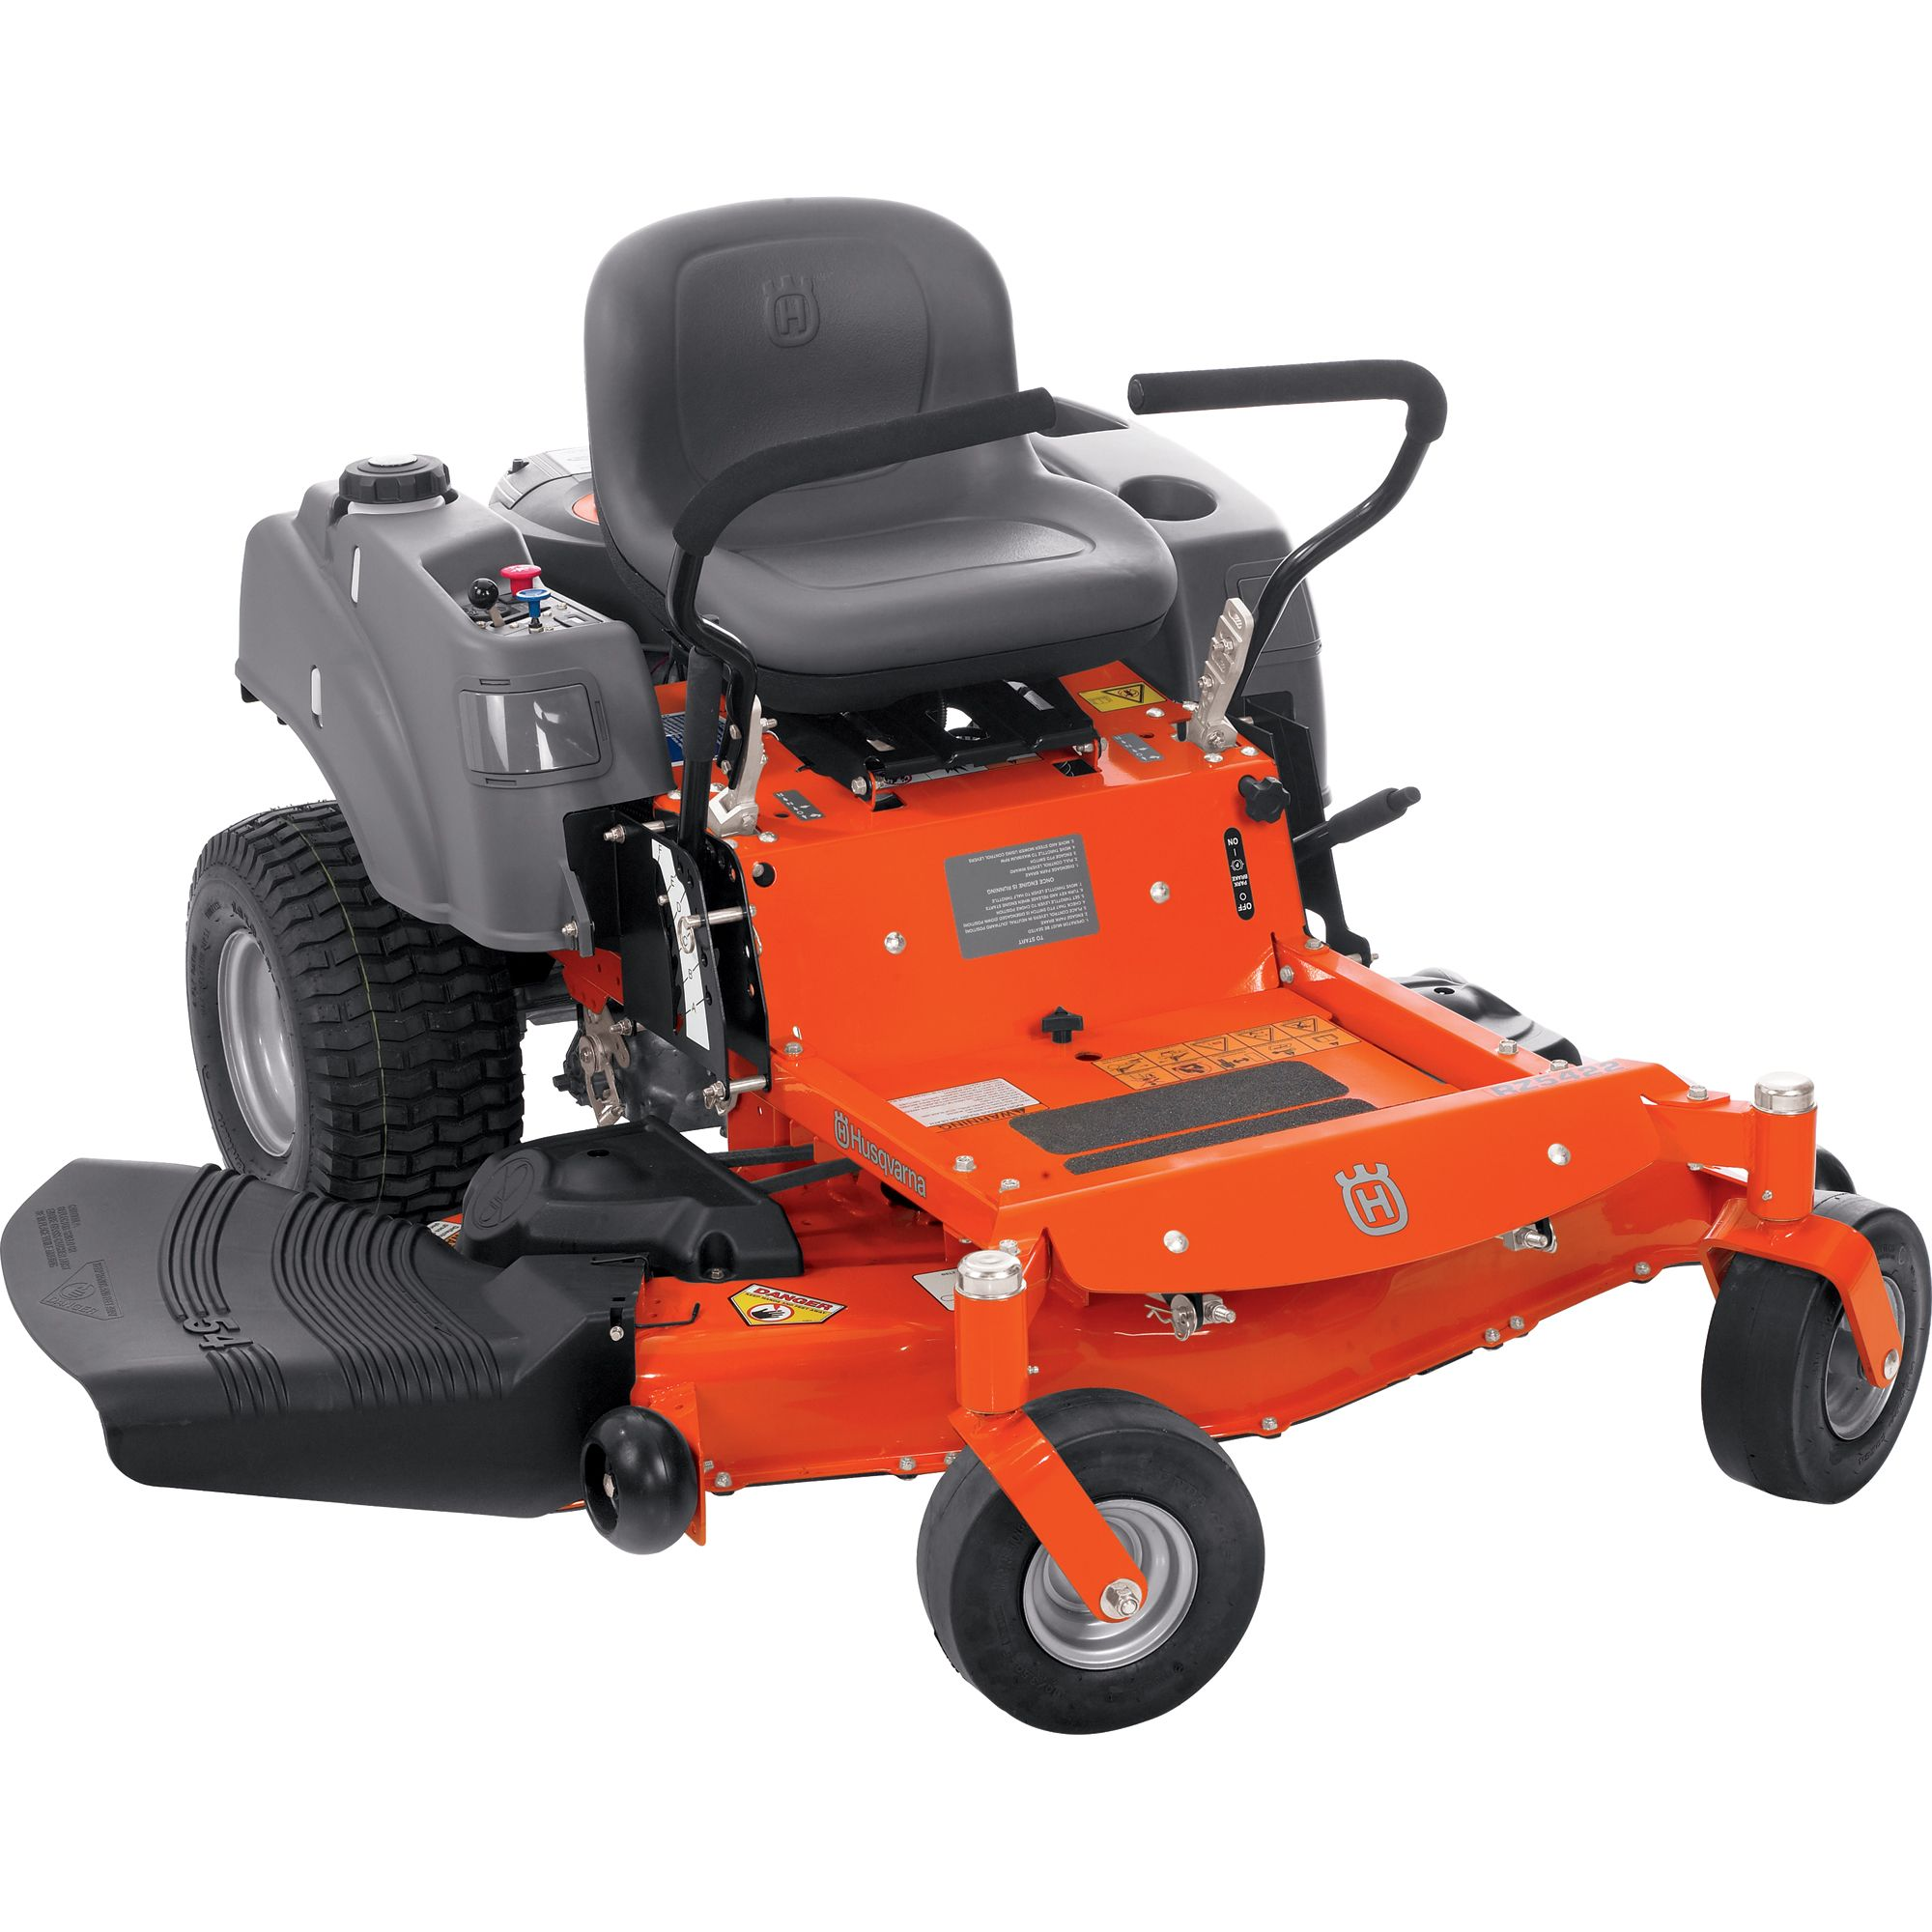 Husqvarna 28982 54 In. Kohler 24HP Gas Powered Zero Turn Riding Lawn Mower